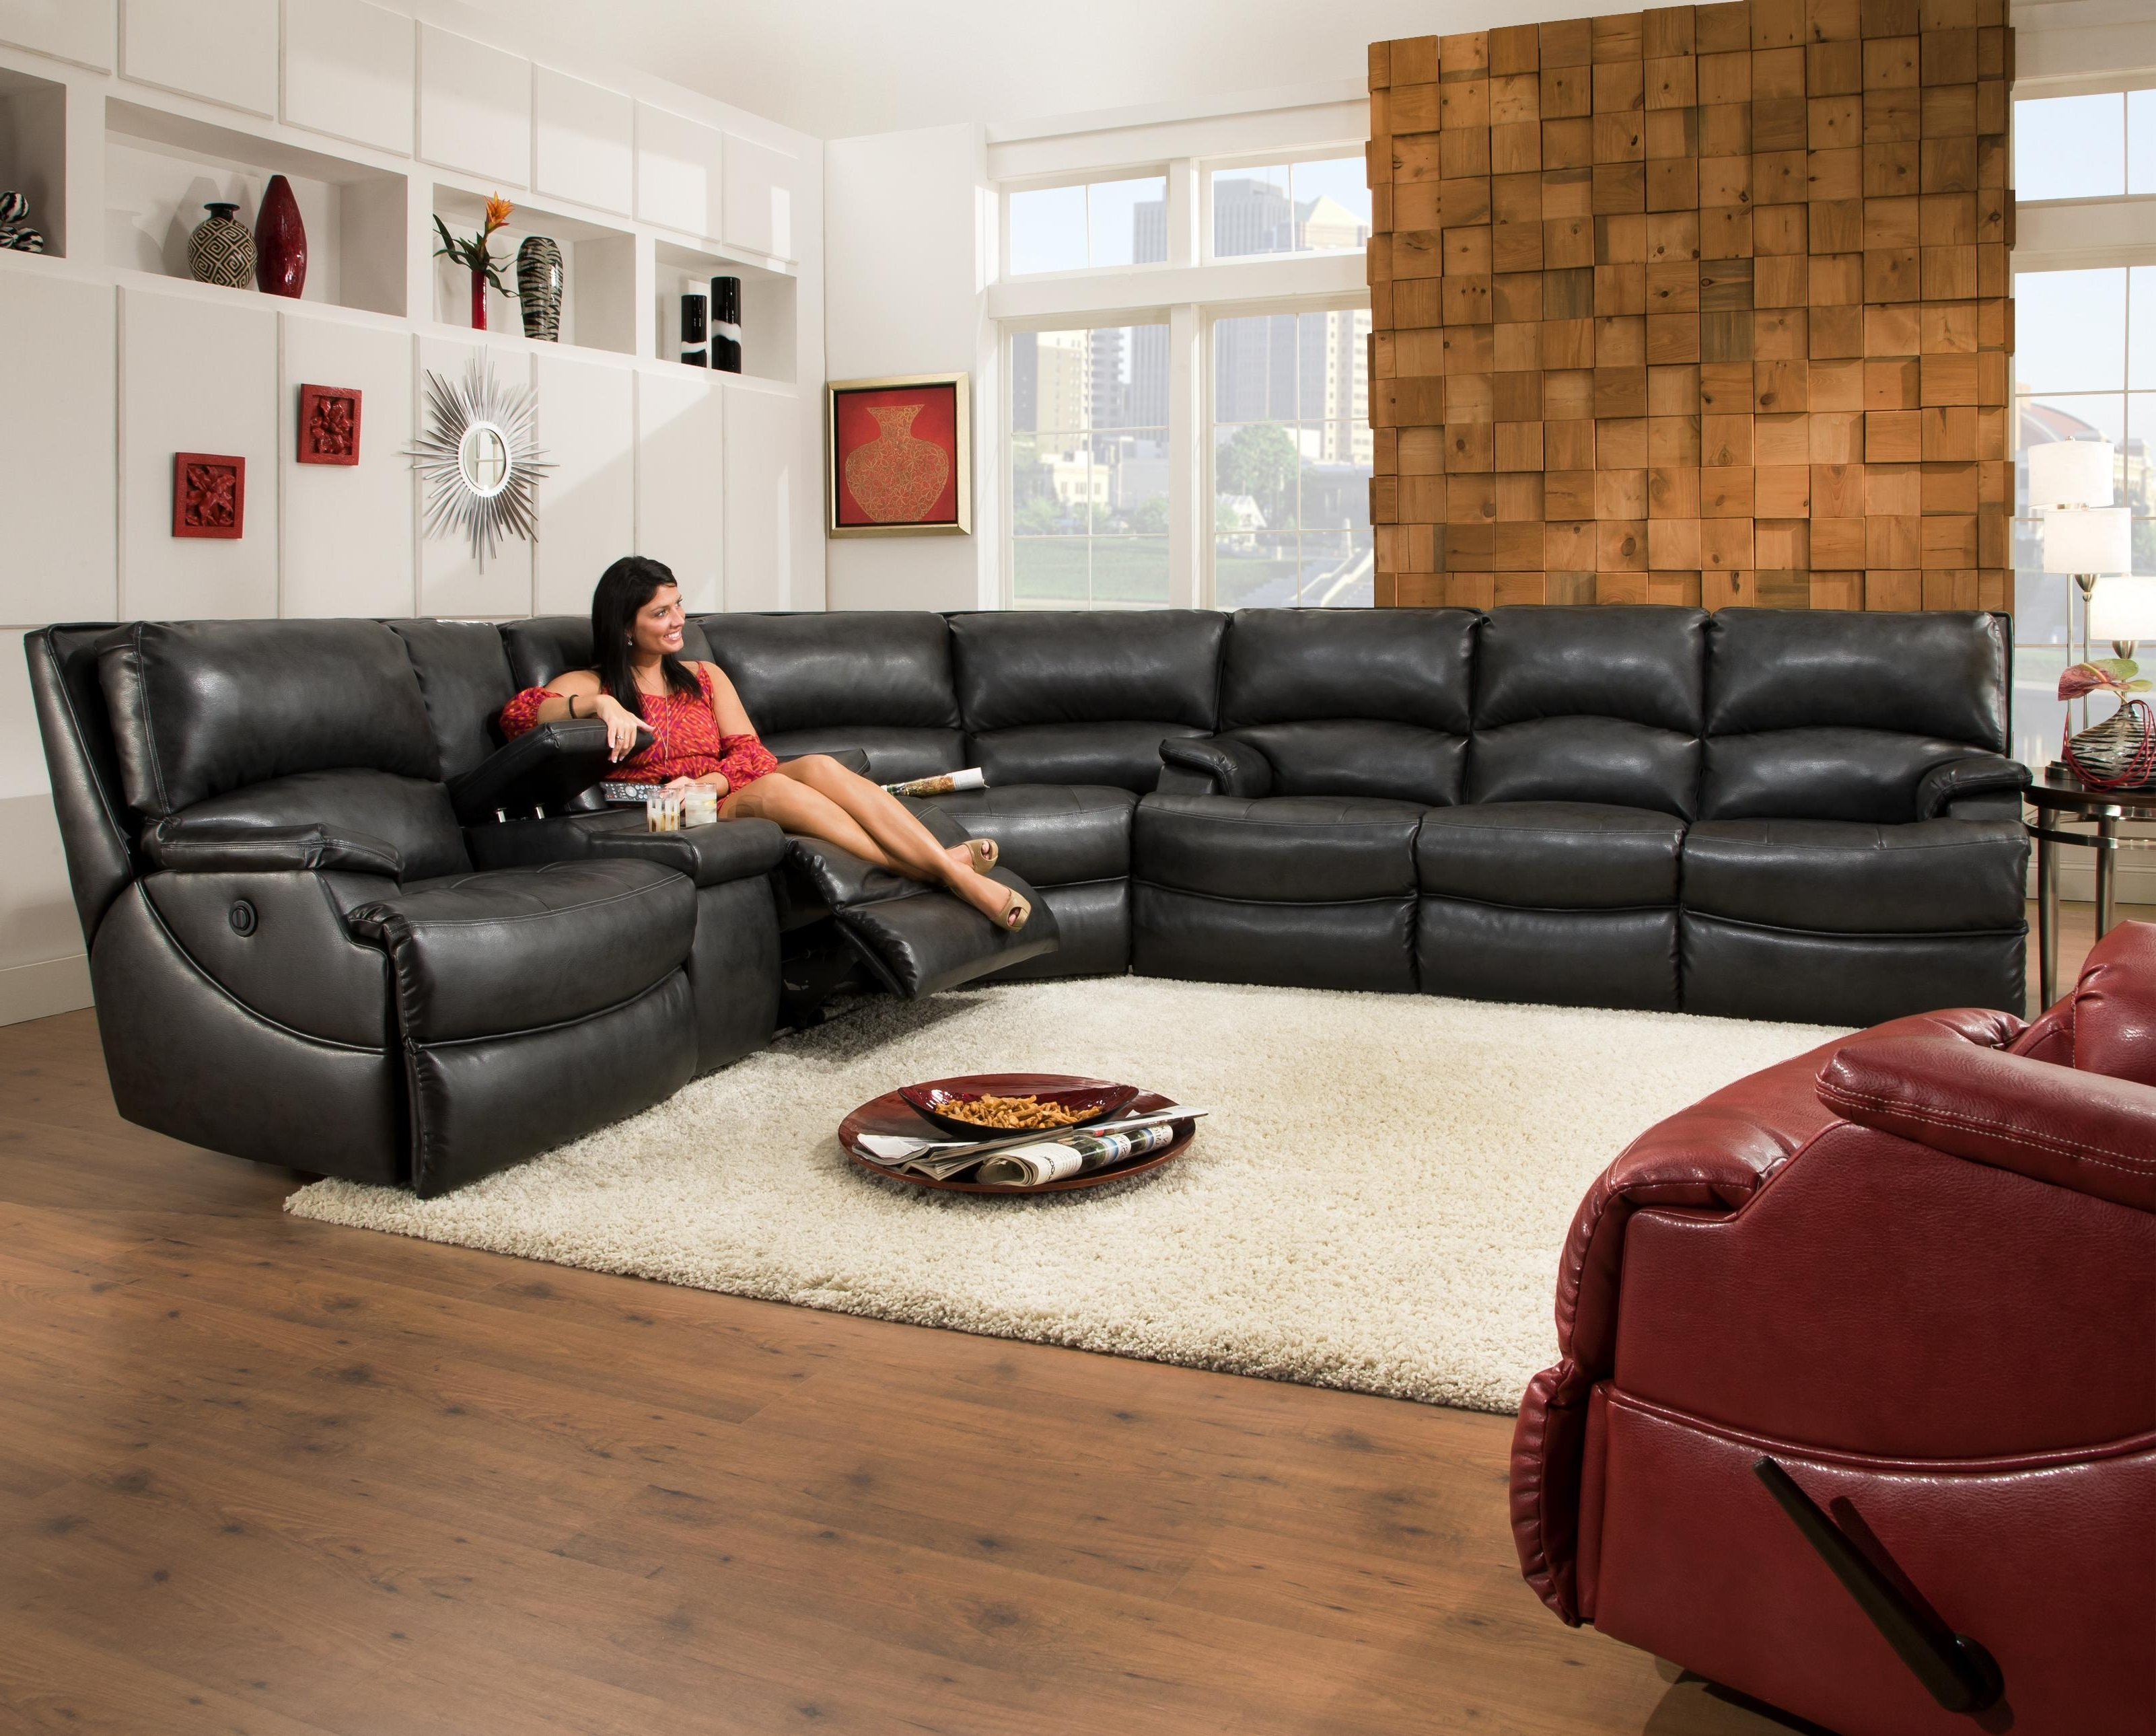 2019 Sectional Sofas In Charlotte Nc Regarding Amazing Black Sectional Sofa With Recliners 48 On Sleeper Sofa (View 7 of 20)